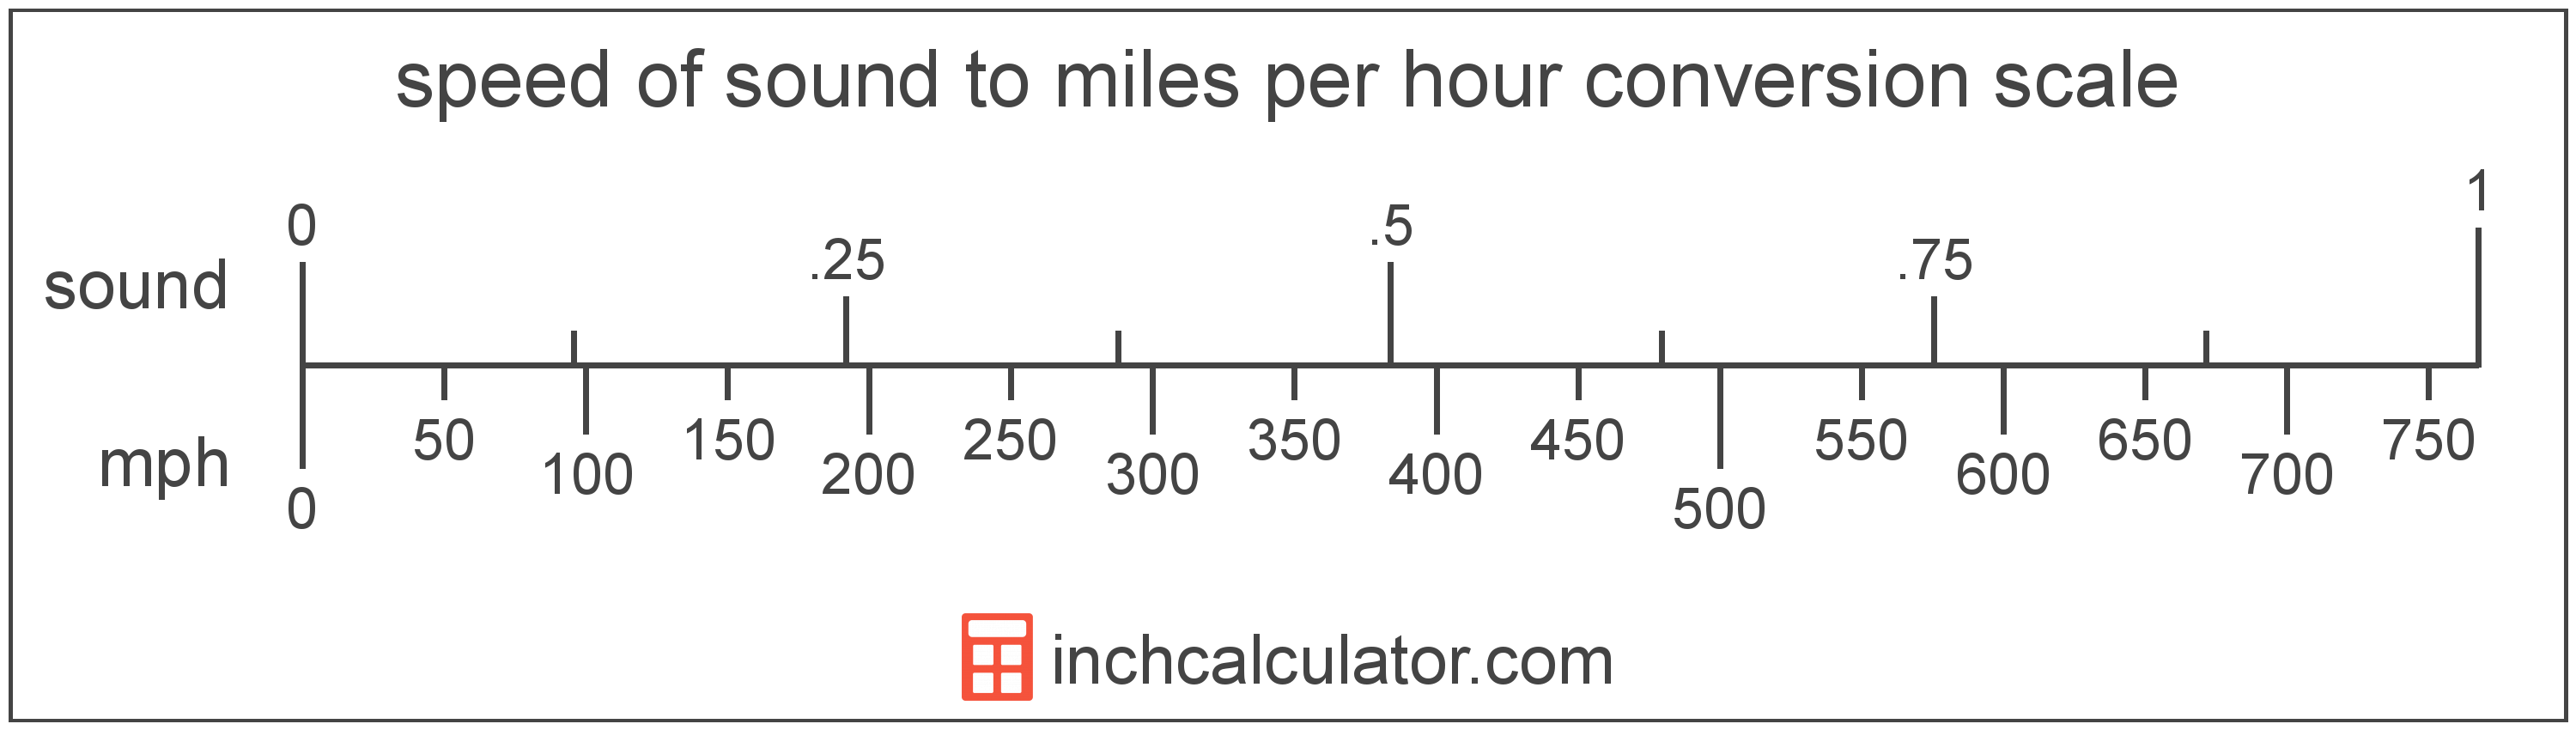 conversion scale showing speed of sound and equivalent miles per hour speed values